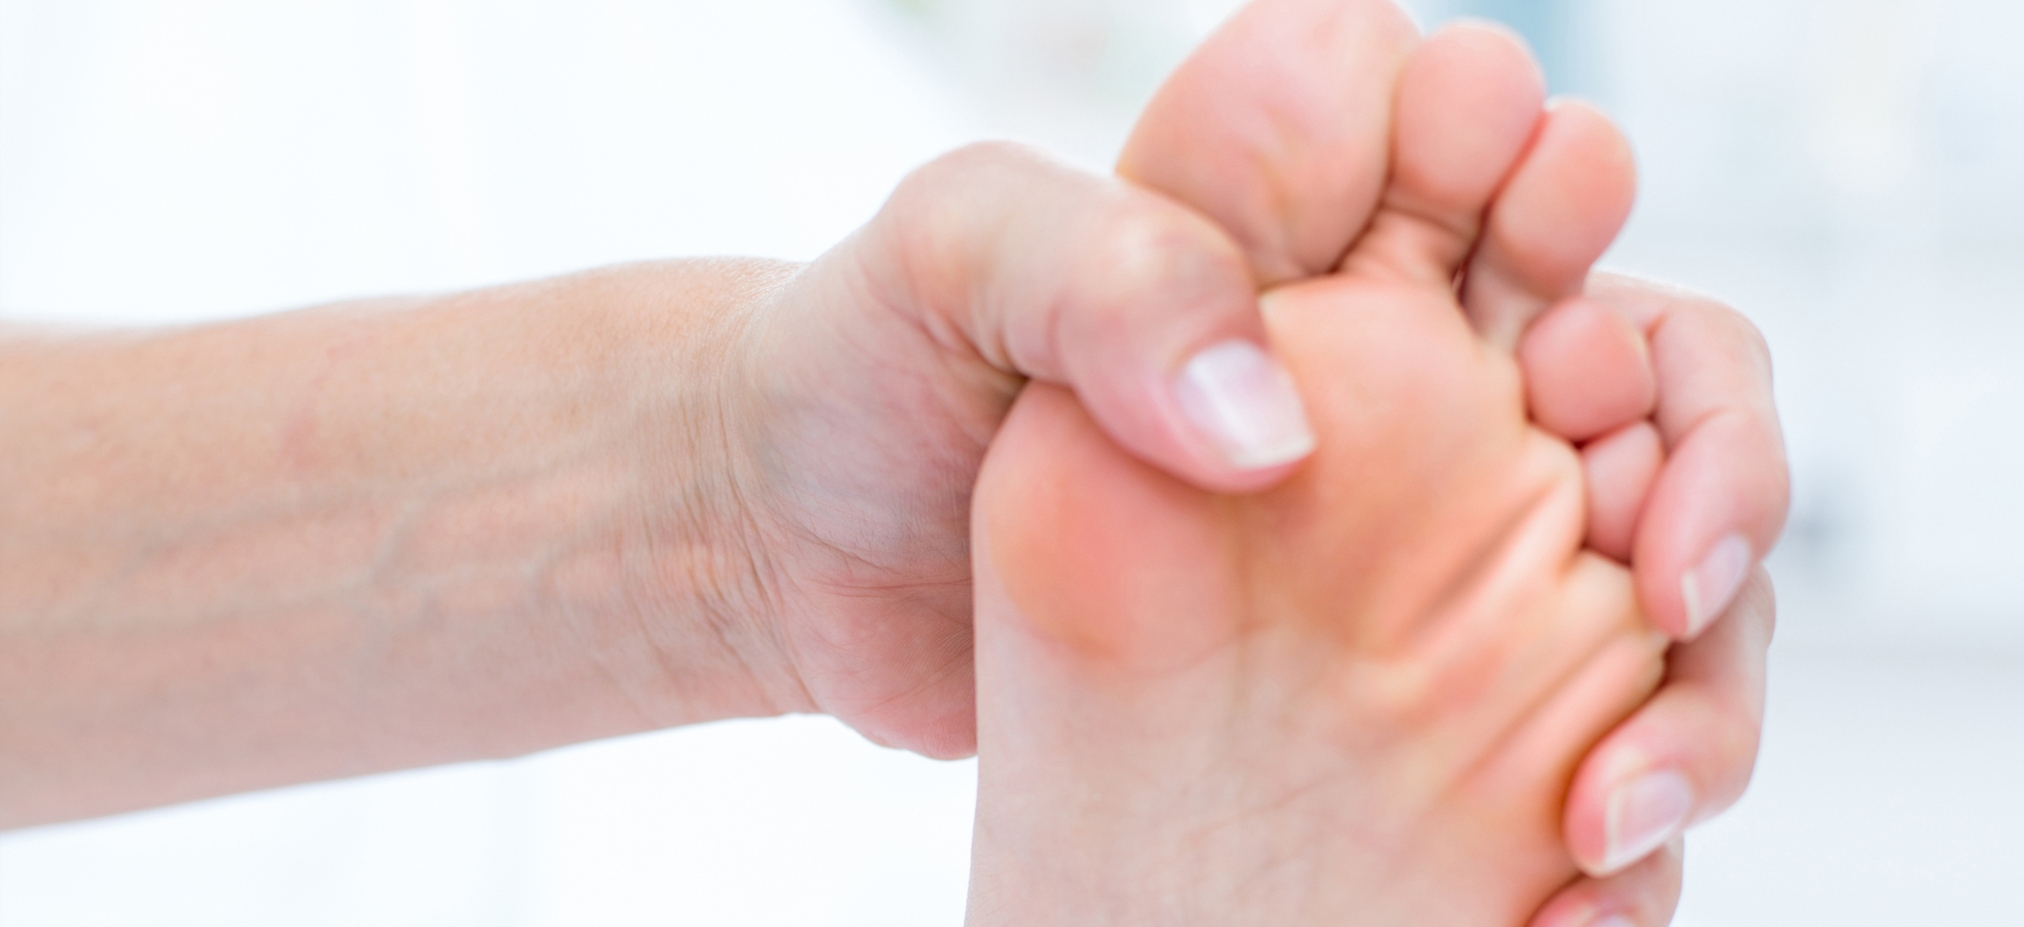 Chiropractic foot care